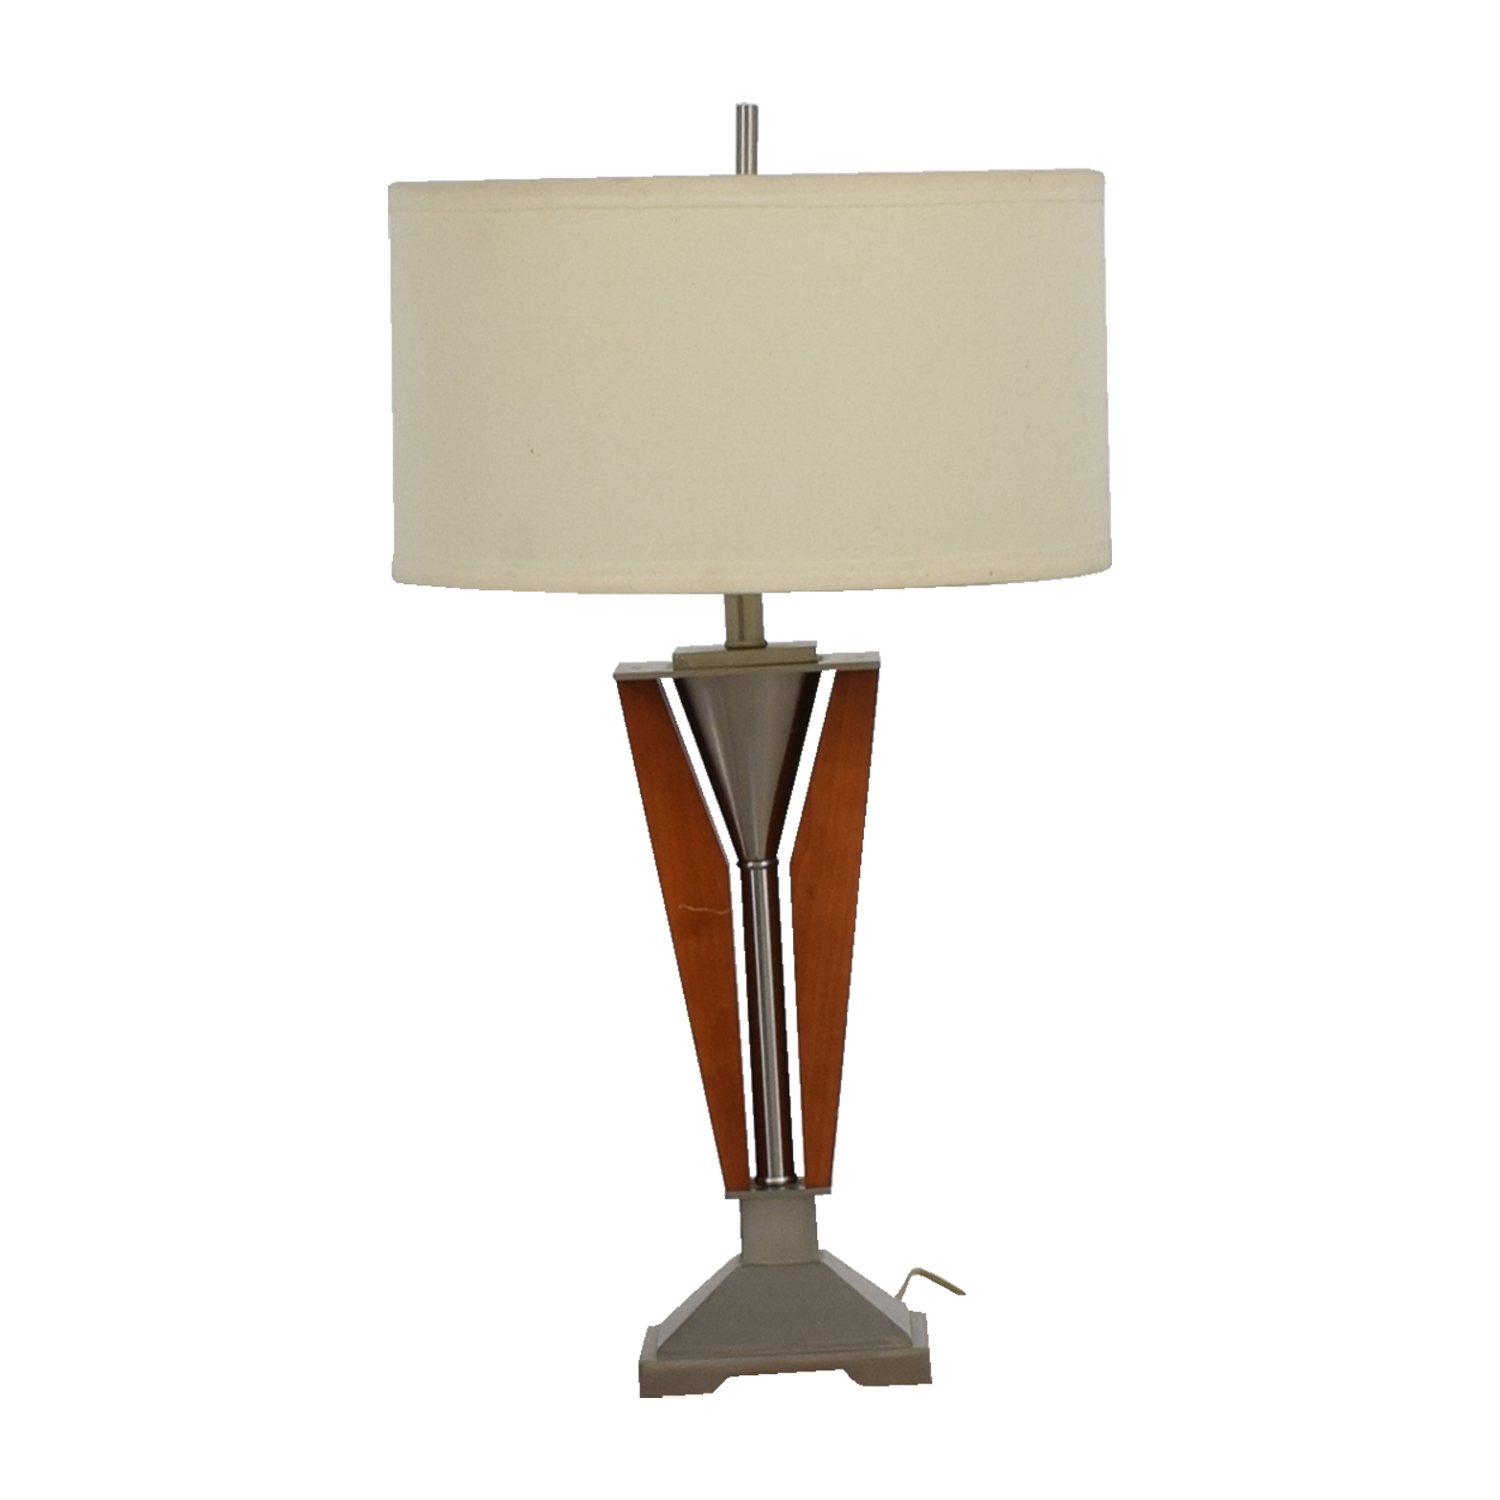 Buy IKEA Mohagany And Stainless Steel Table Lamp IKEA Decor ...